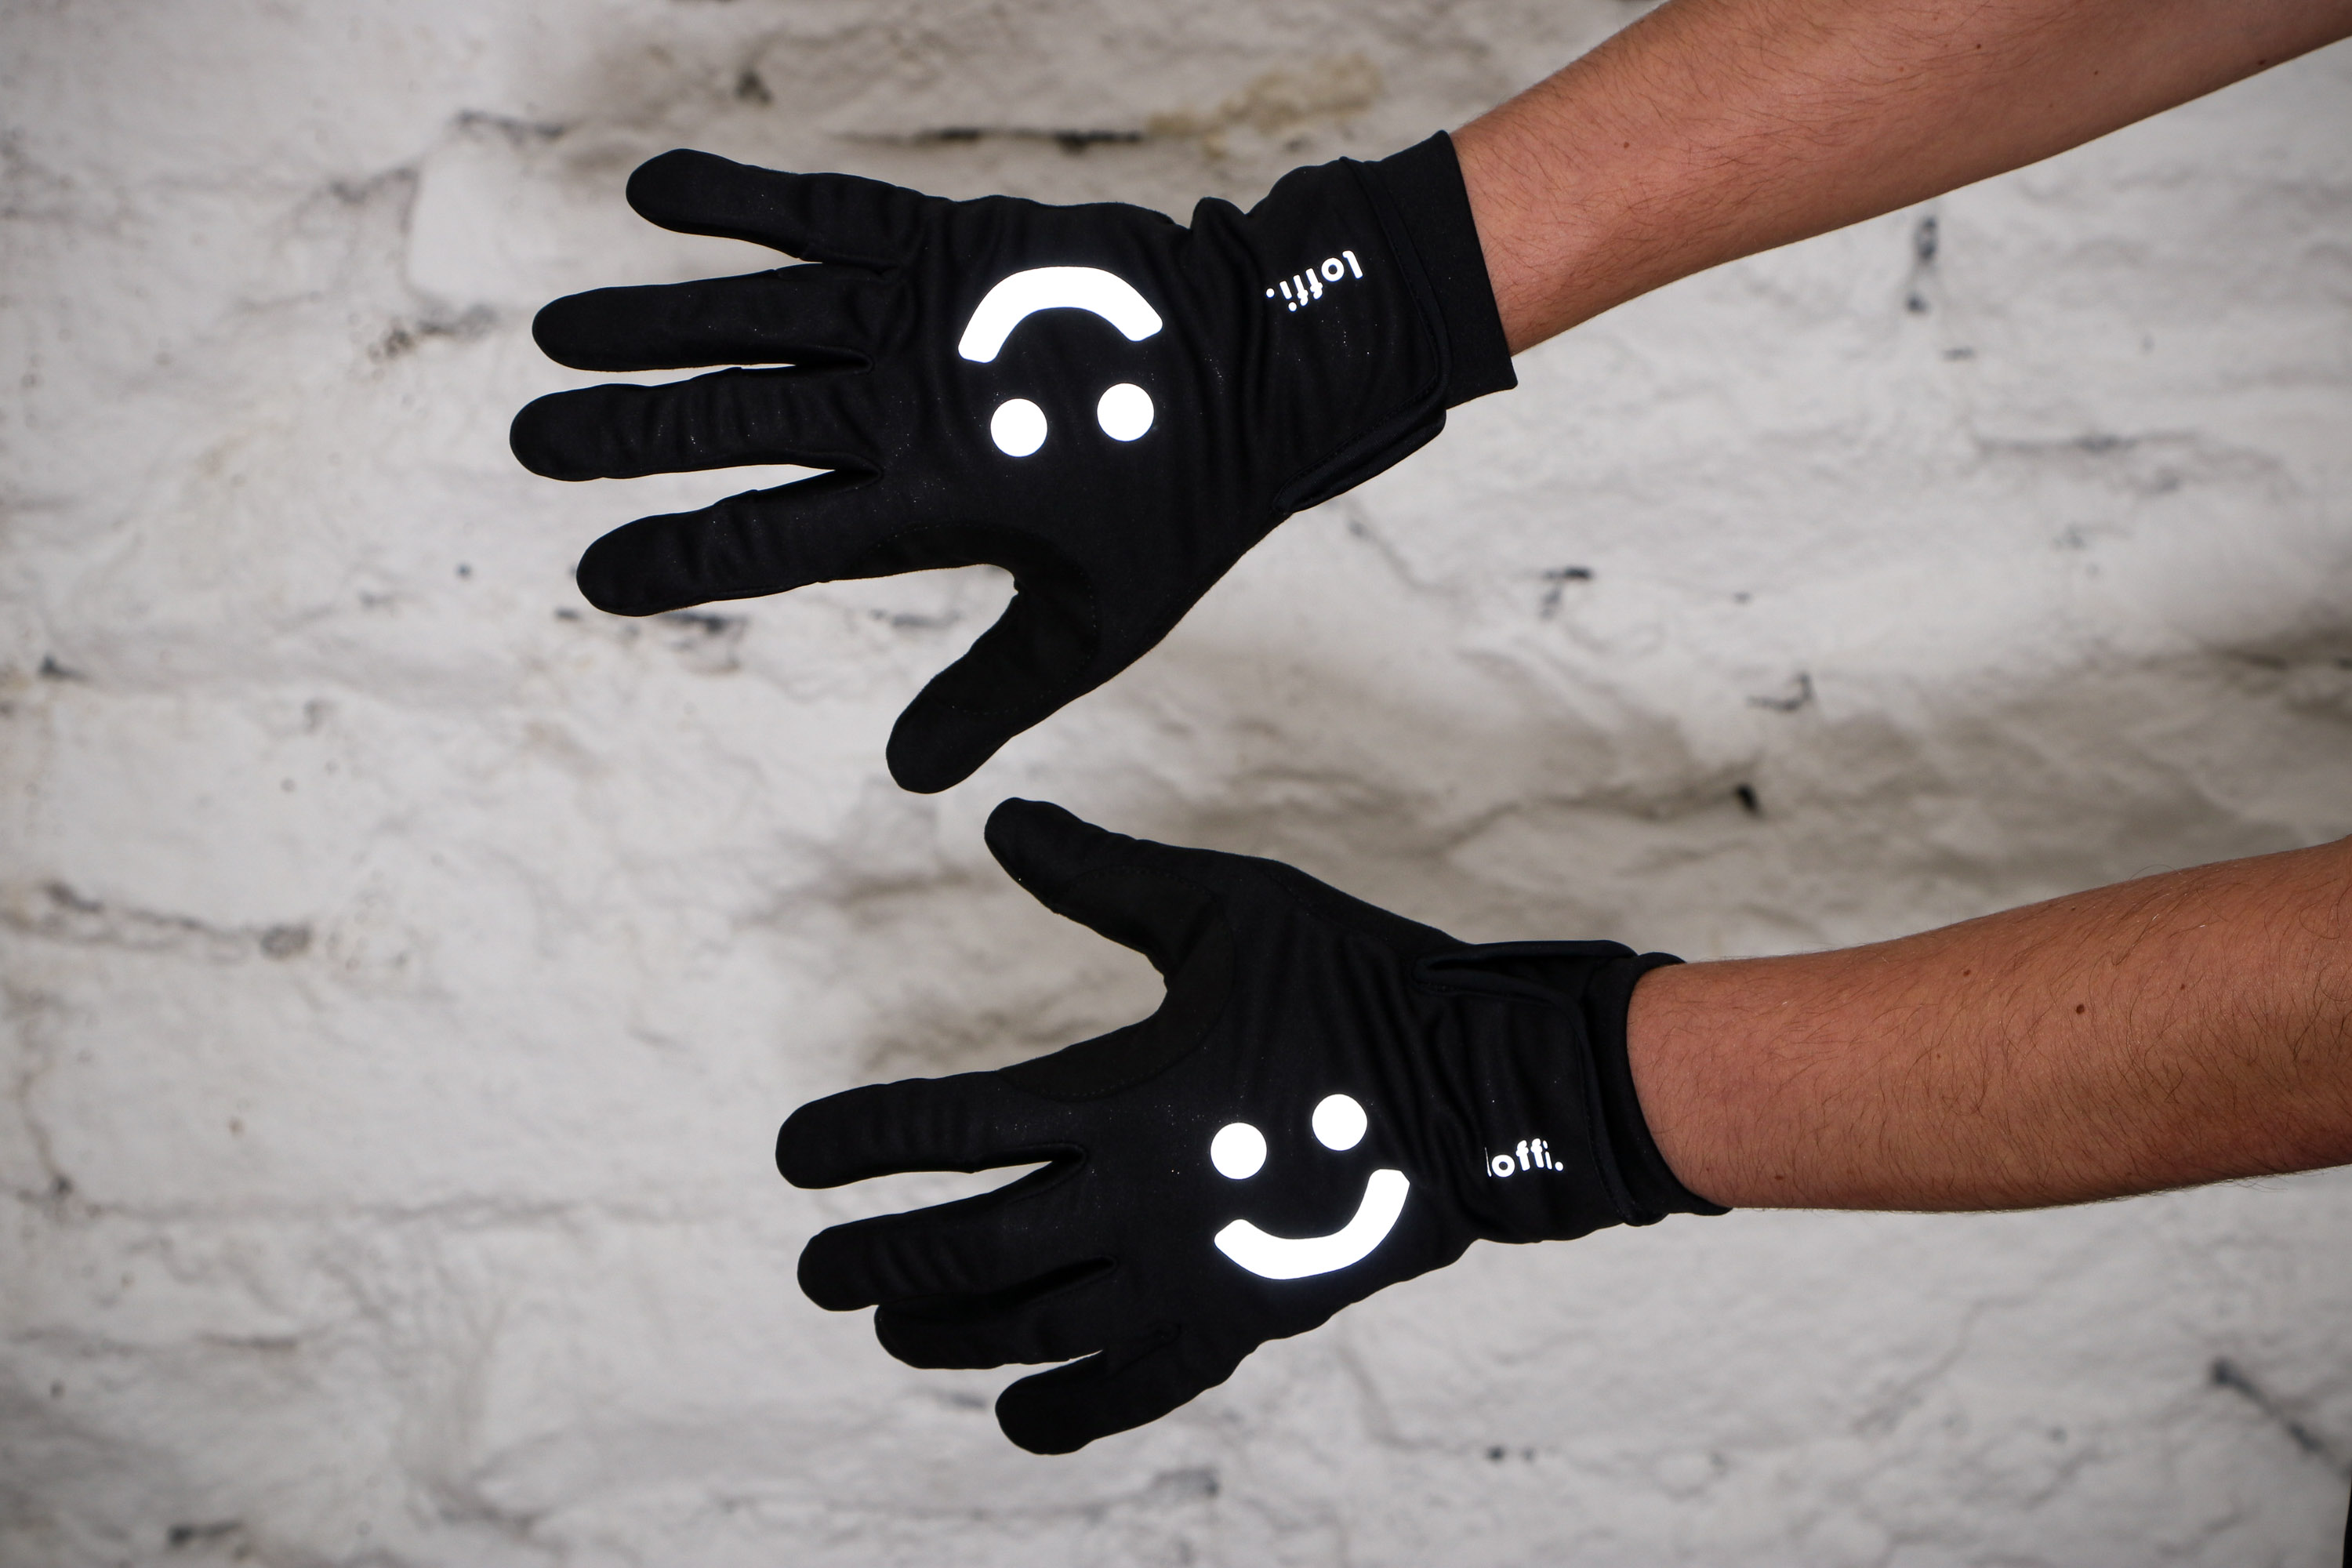 Towelling Thumb Area High Grip Palm Touch Screen Compatible Cycling Gloves